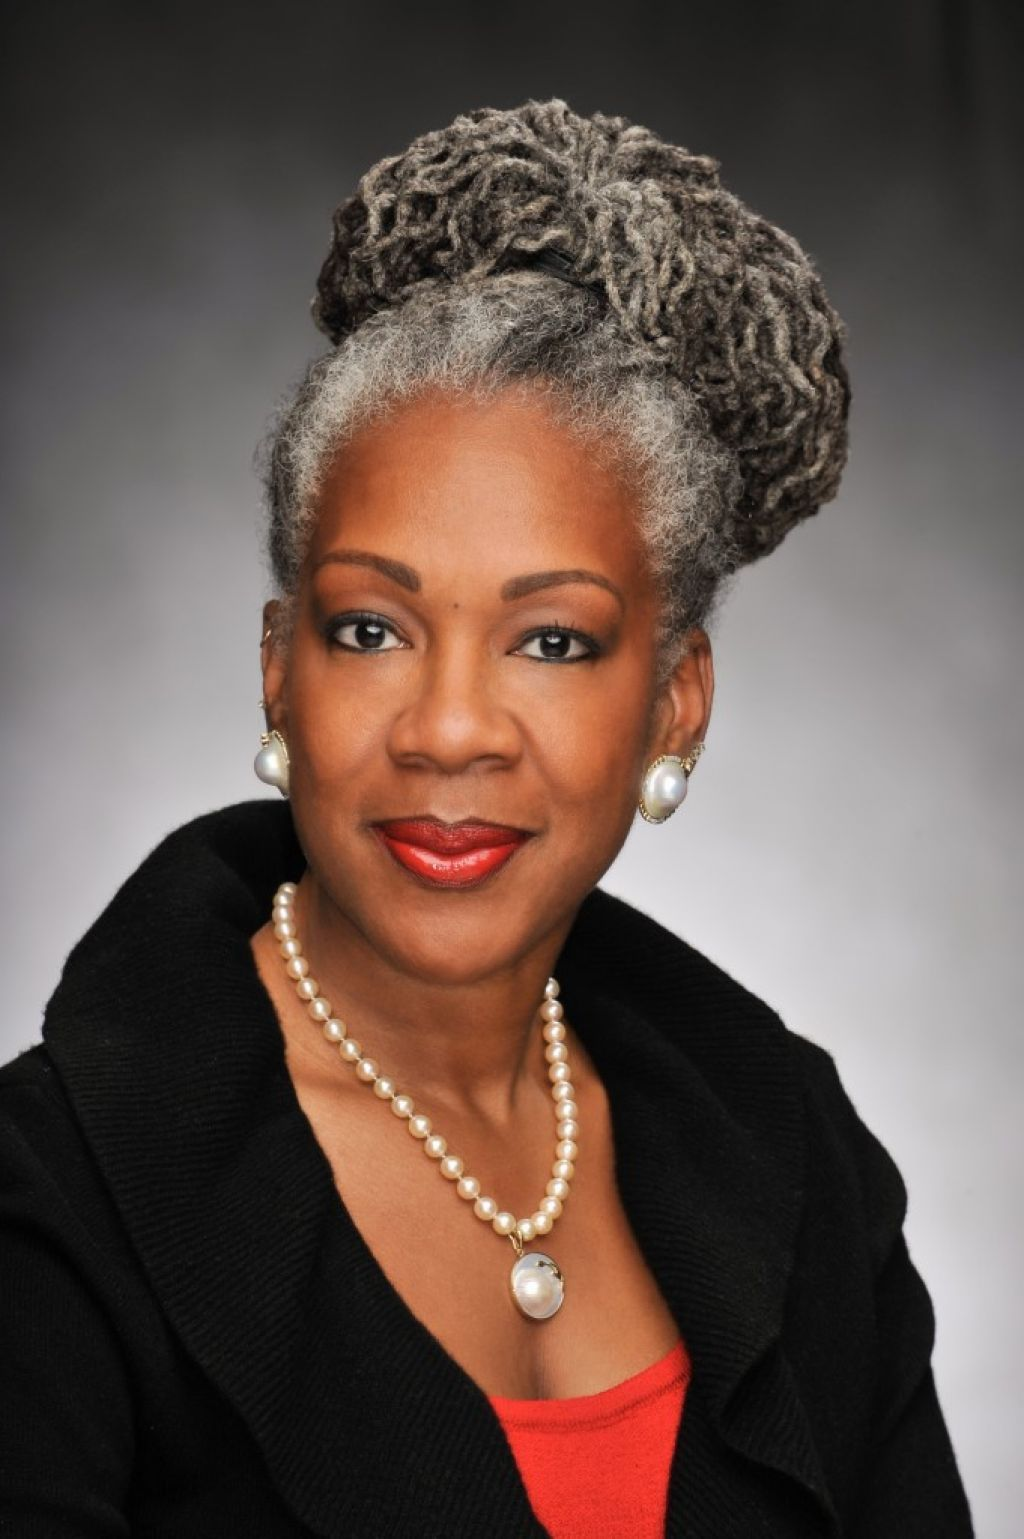 Grey Hair African American Woman Related to African